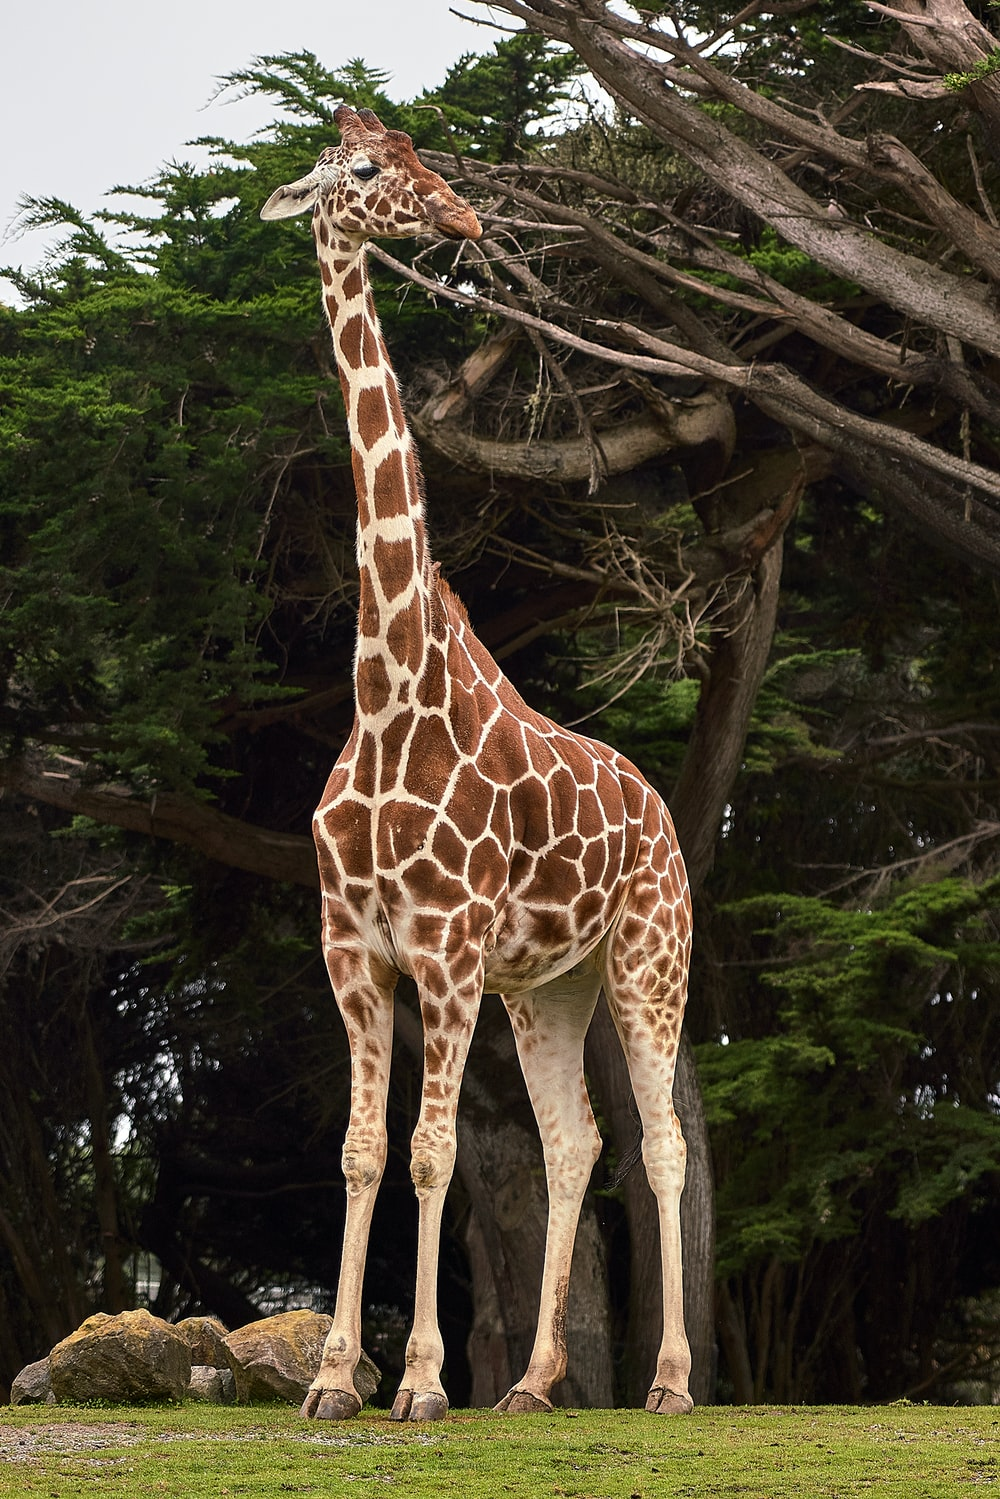 giraffe standing near tree at daytime